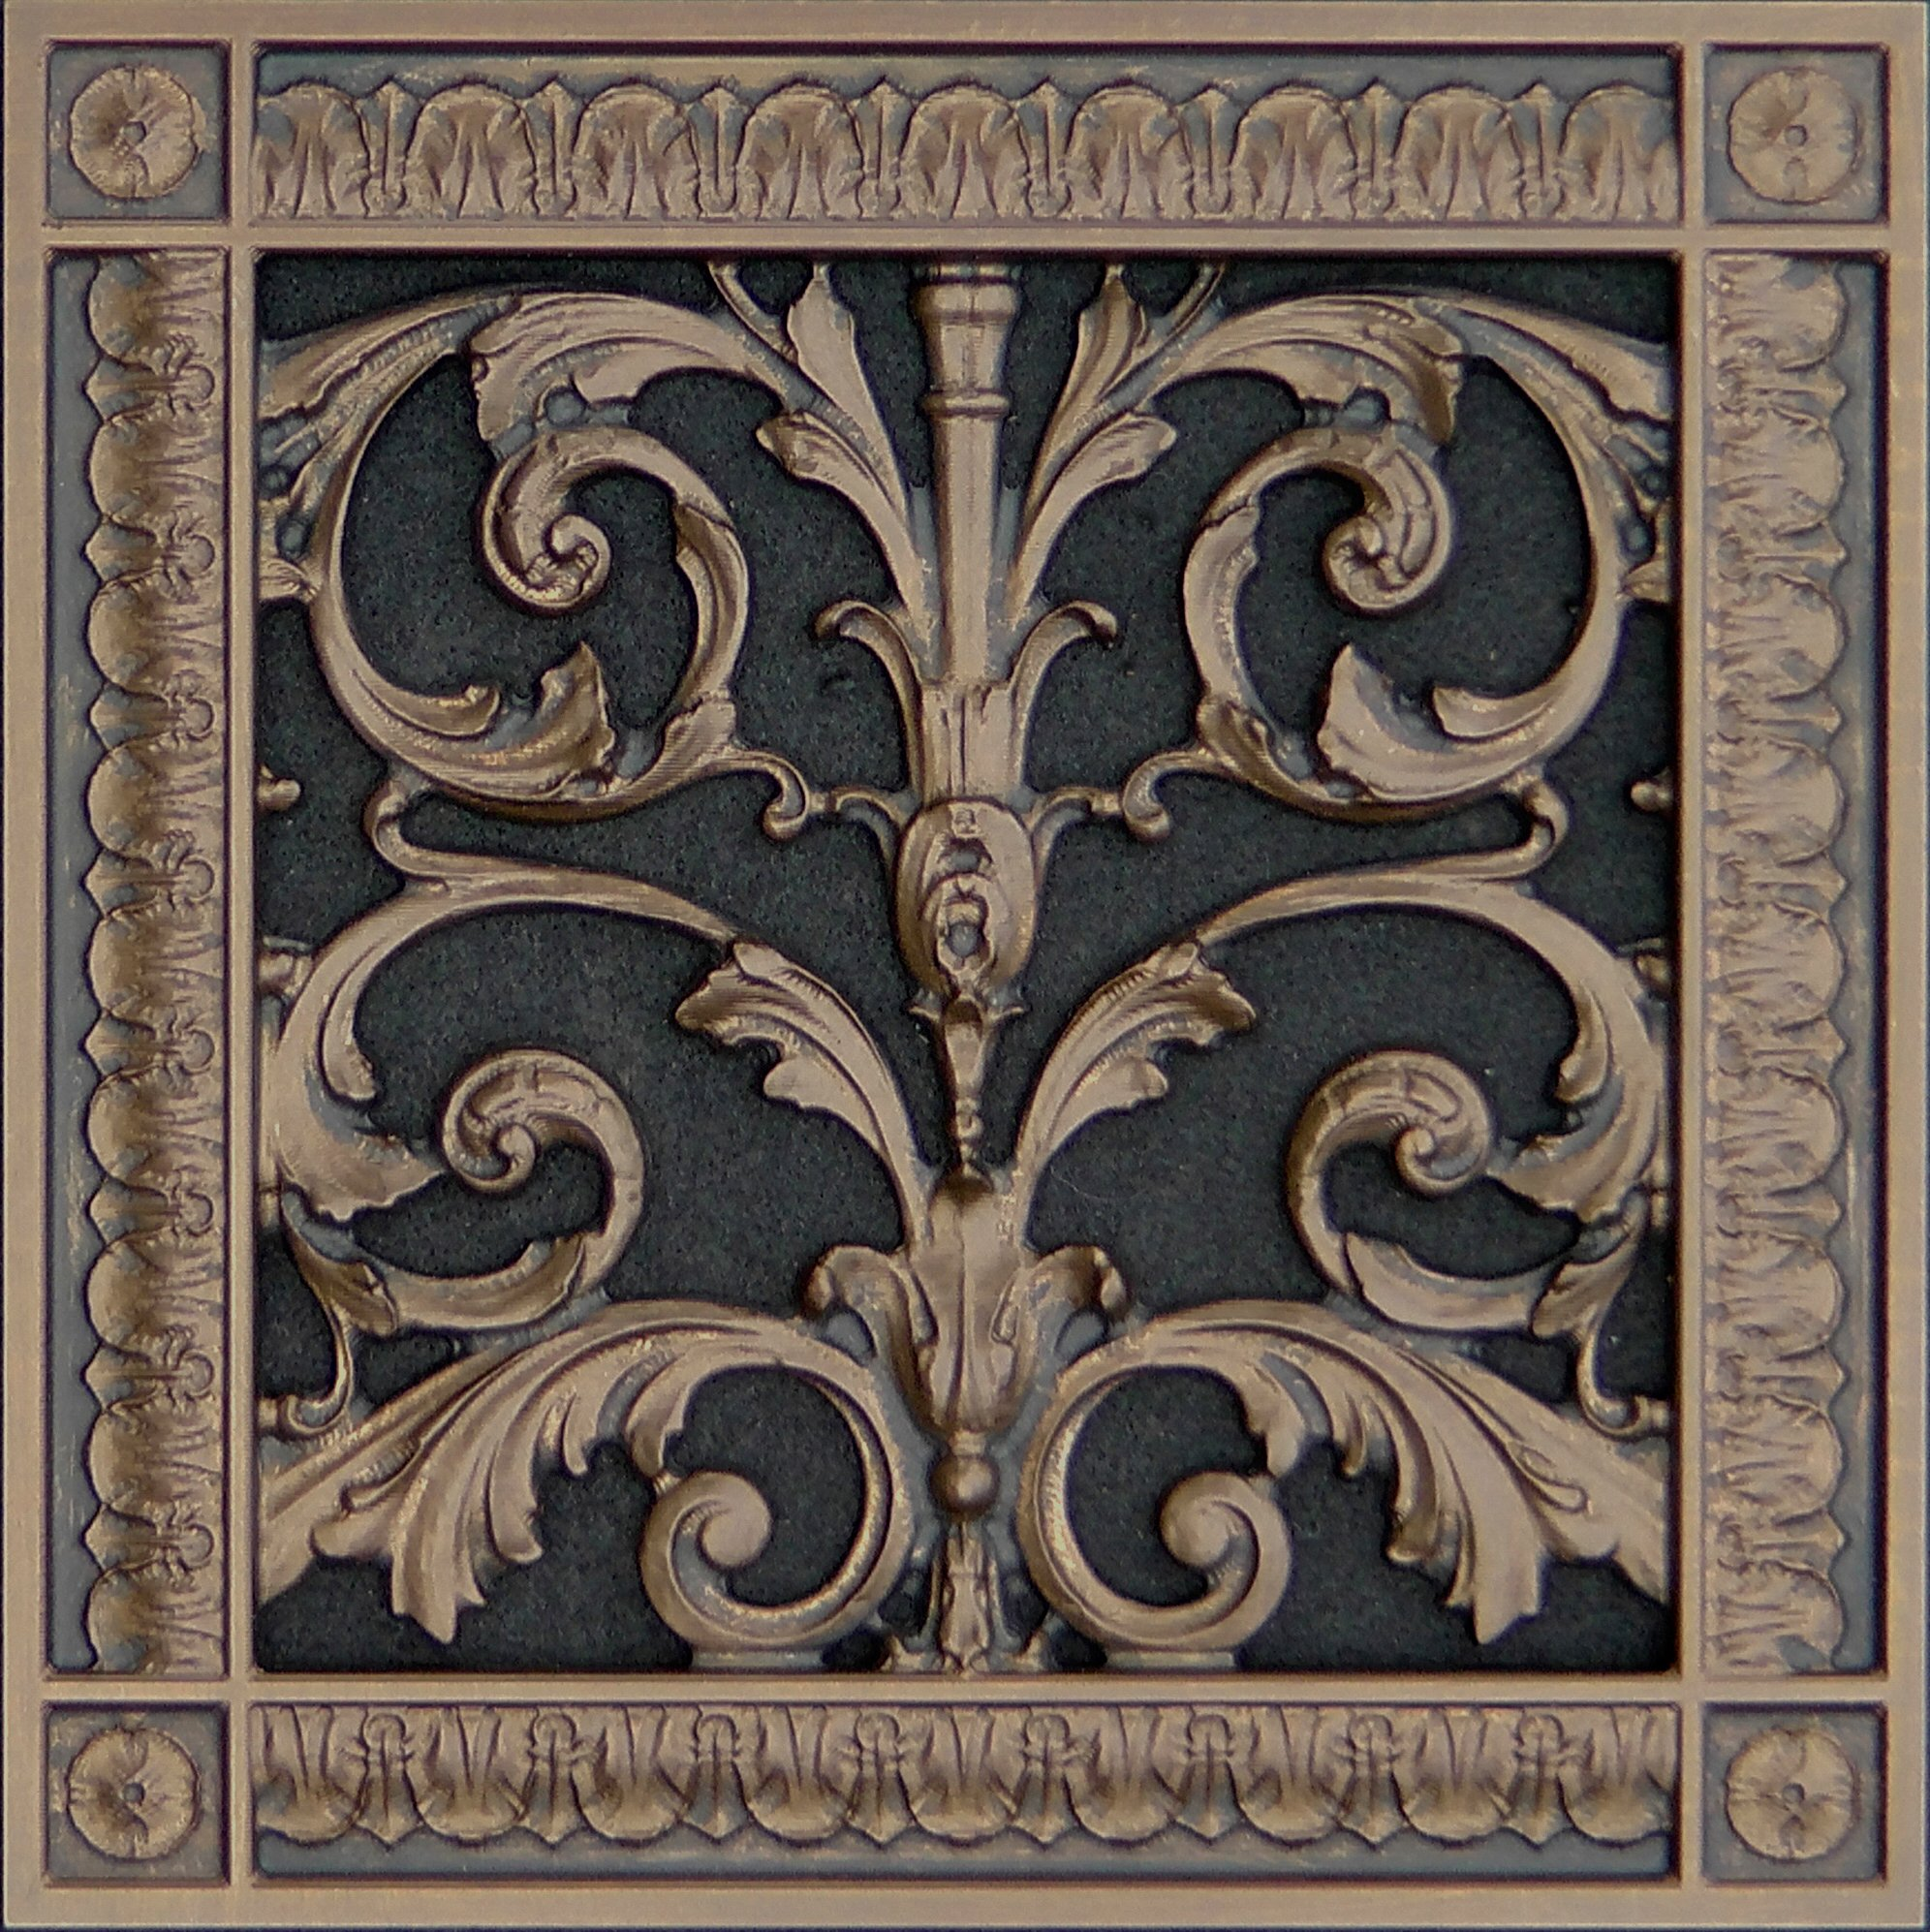 "Decorative Vent Cover, Grille, made of Urethane Resin in Louis XIV, French style fits over a 8"" x 8"", Total size, 10"" by 10"", for wall & ceiling installation only. (not for floors) (Dark Bronze)"